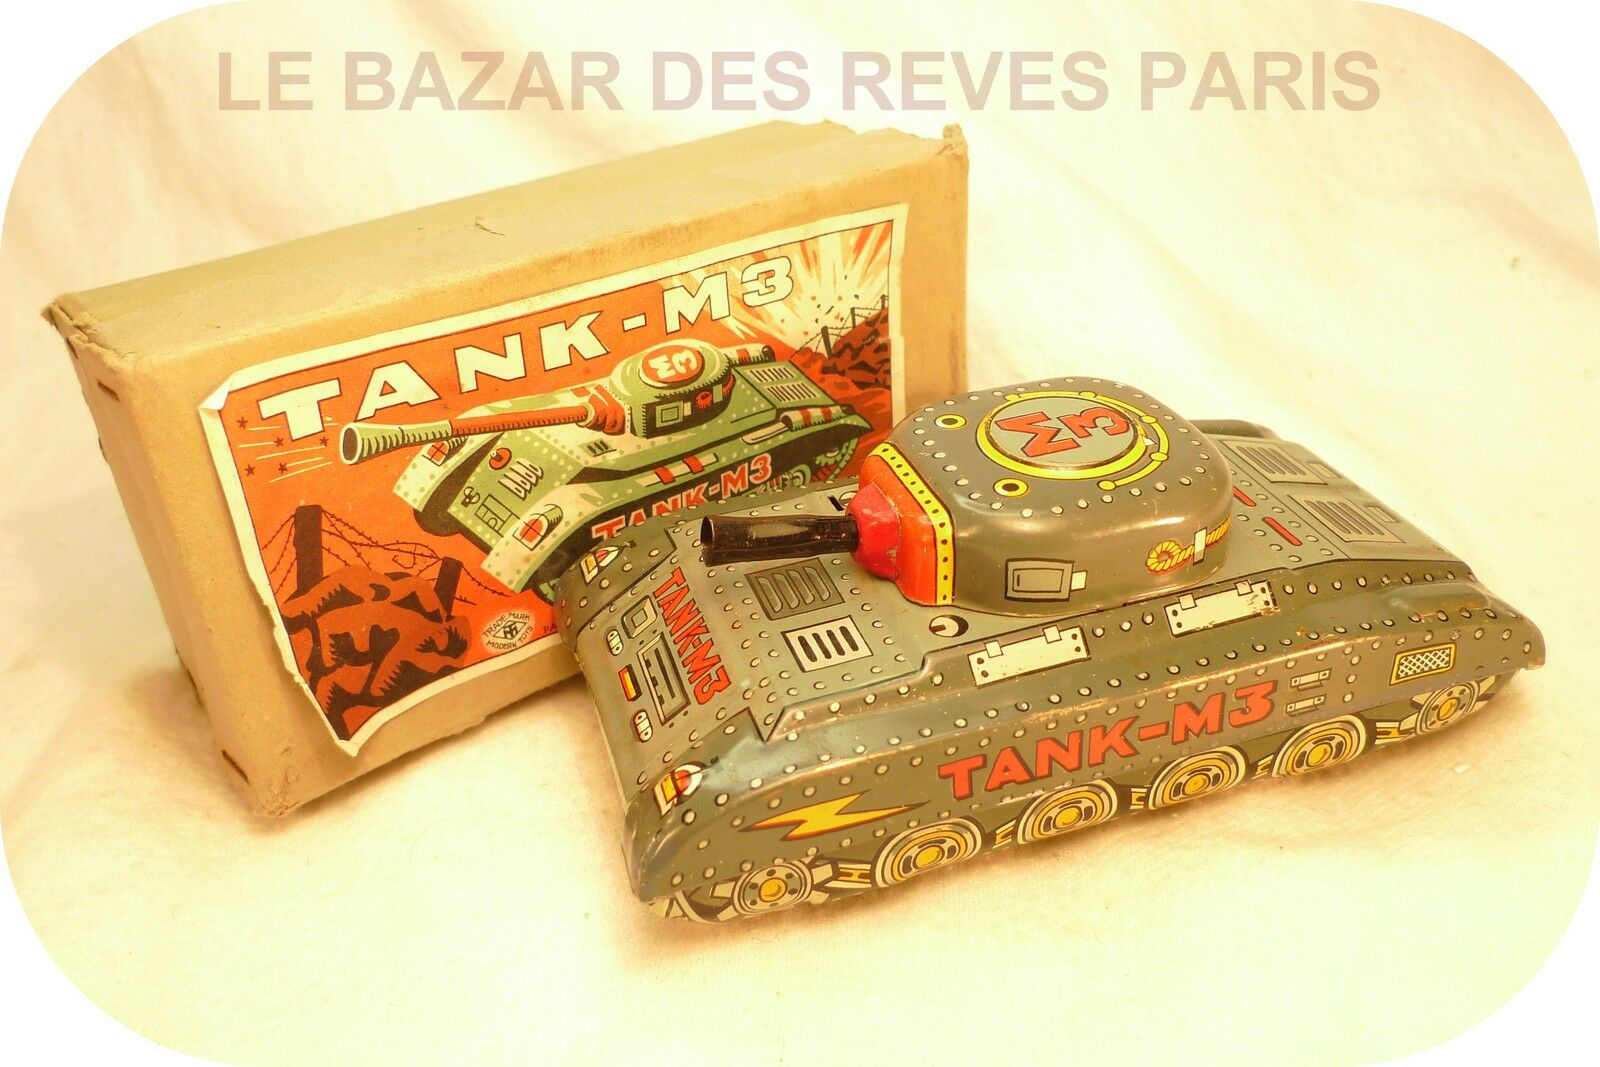 Char  Tank M3  made in japan